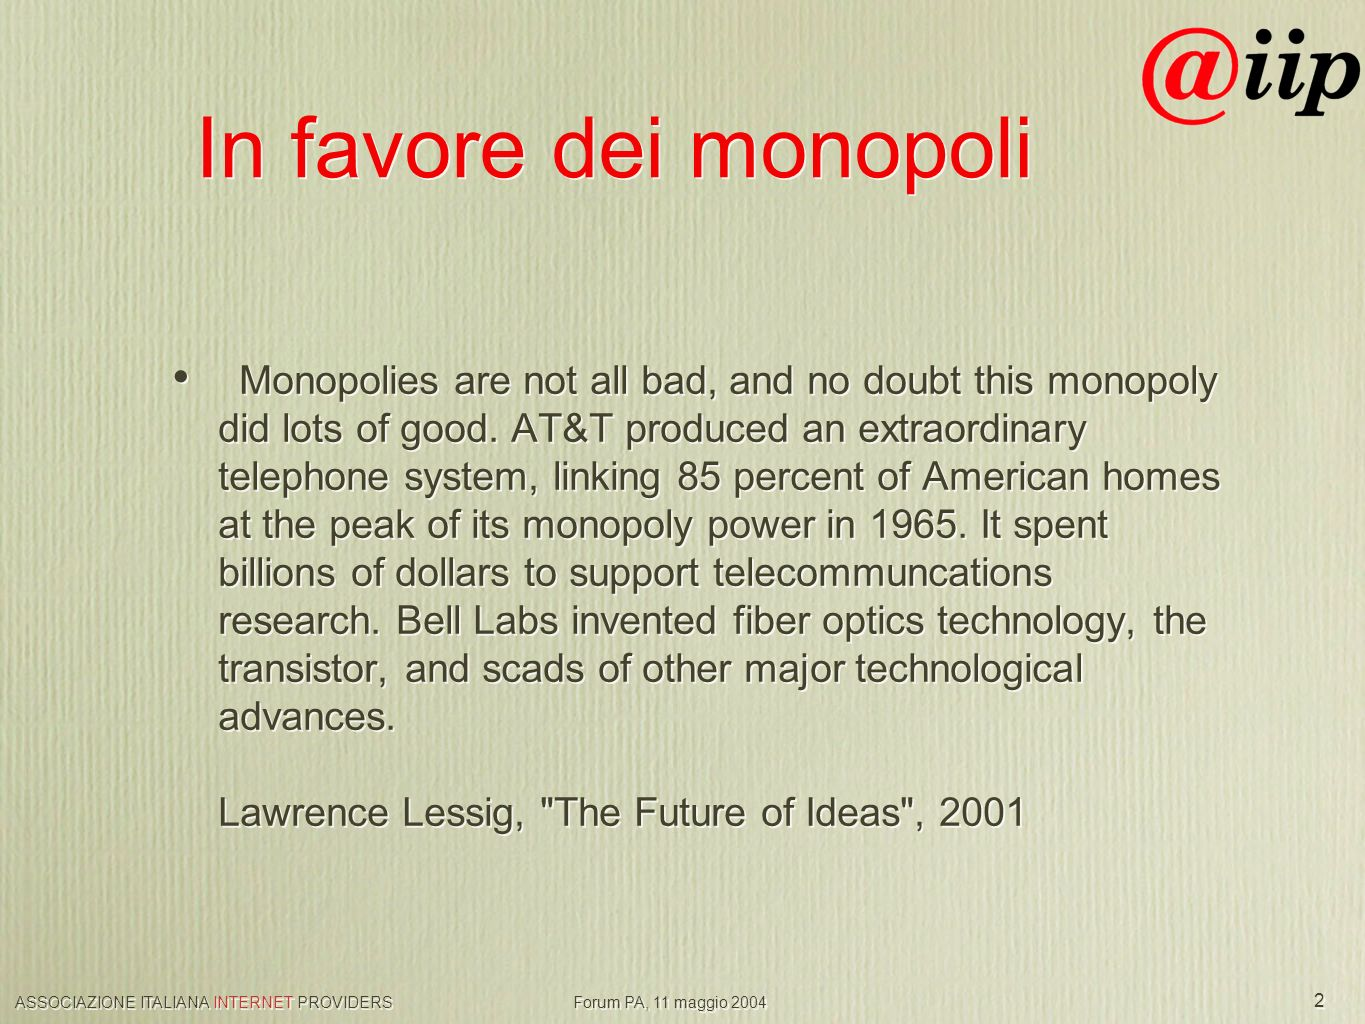 ASSOCIAZIONE ITALIANA INTERNET PROVIDERS Forum PA, 11 maggio 2004 2 In favore dei monopoli Monopolies are not all bad, and no doubt this monopoly did